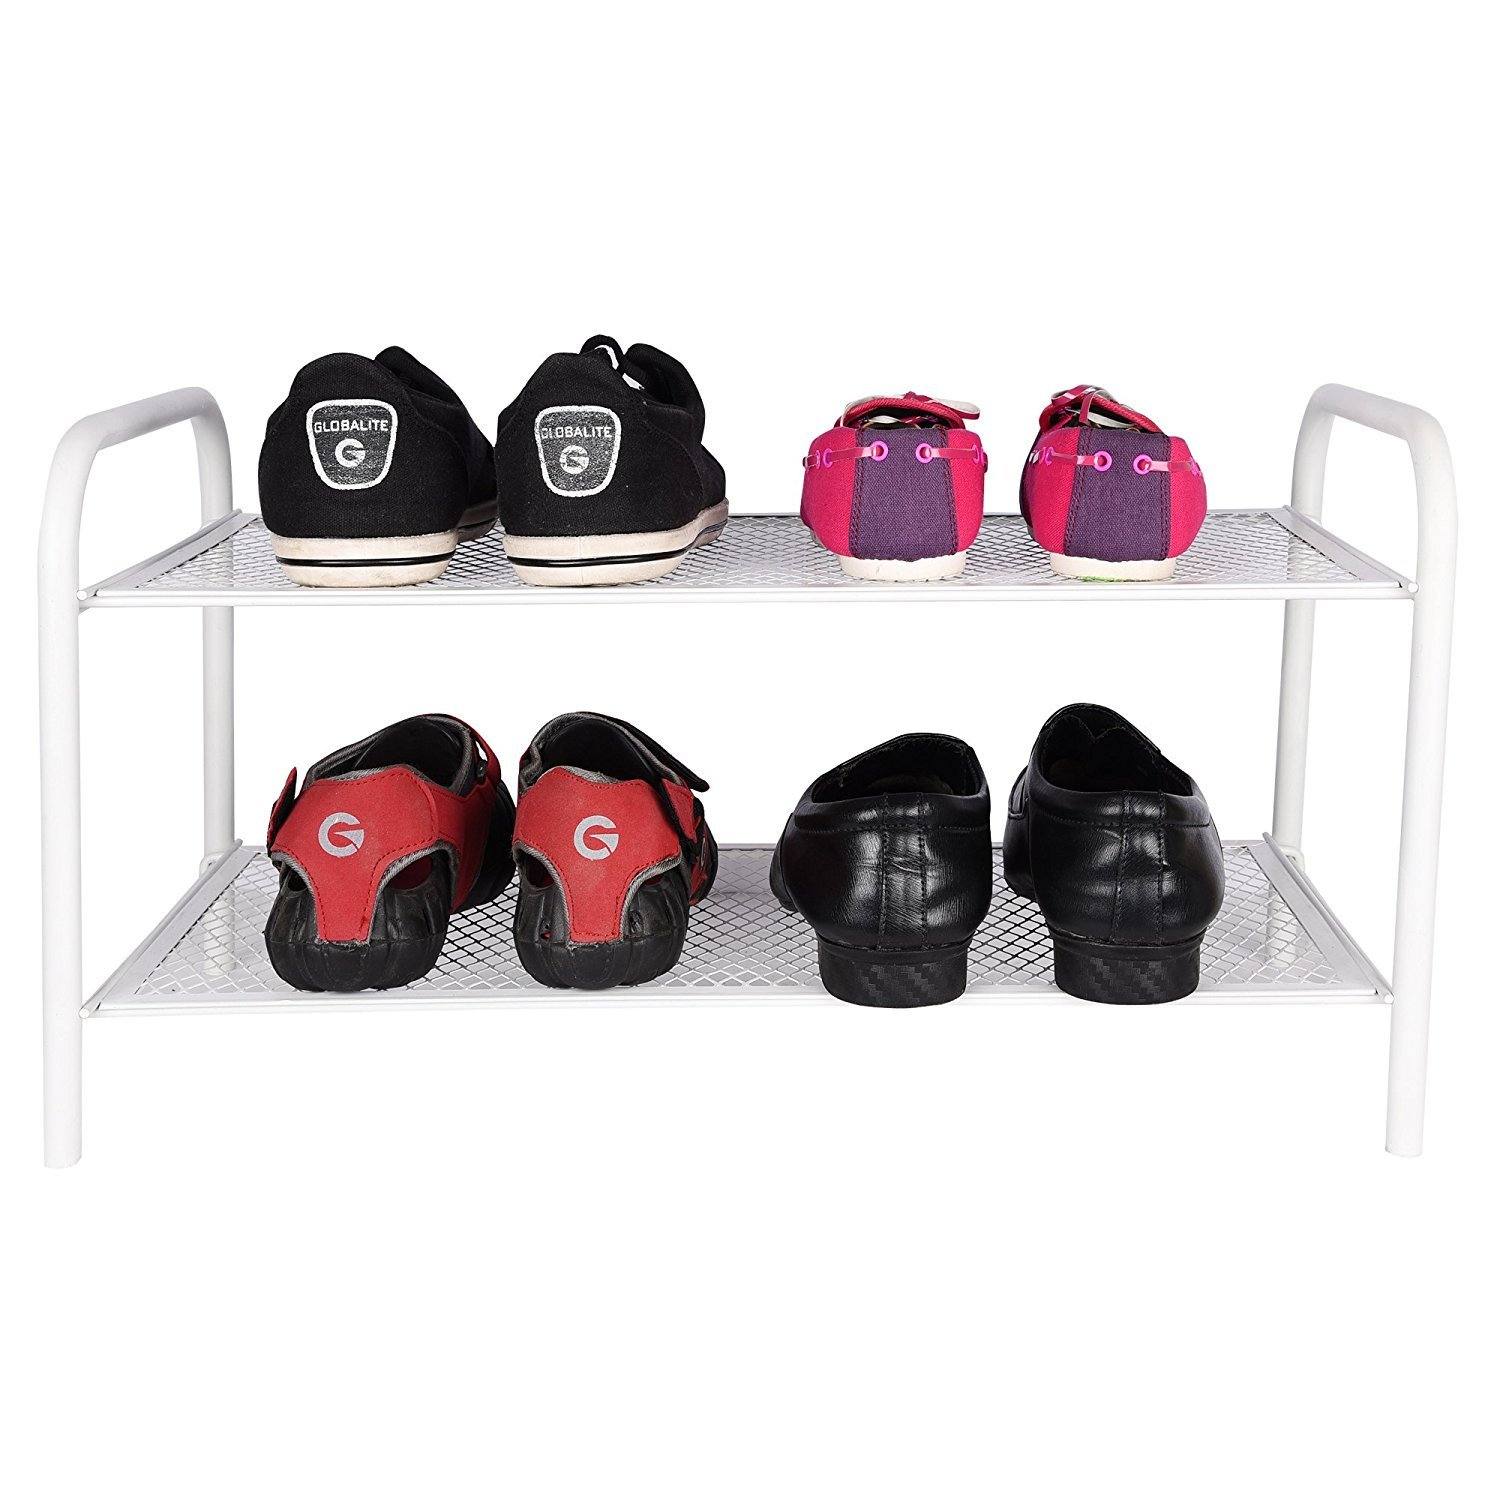 Get Magna Antique Look Home Storage Rack-Black at Rs 494   Amazon Offer